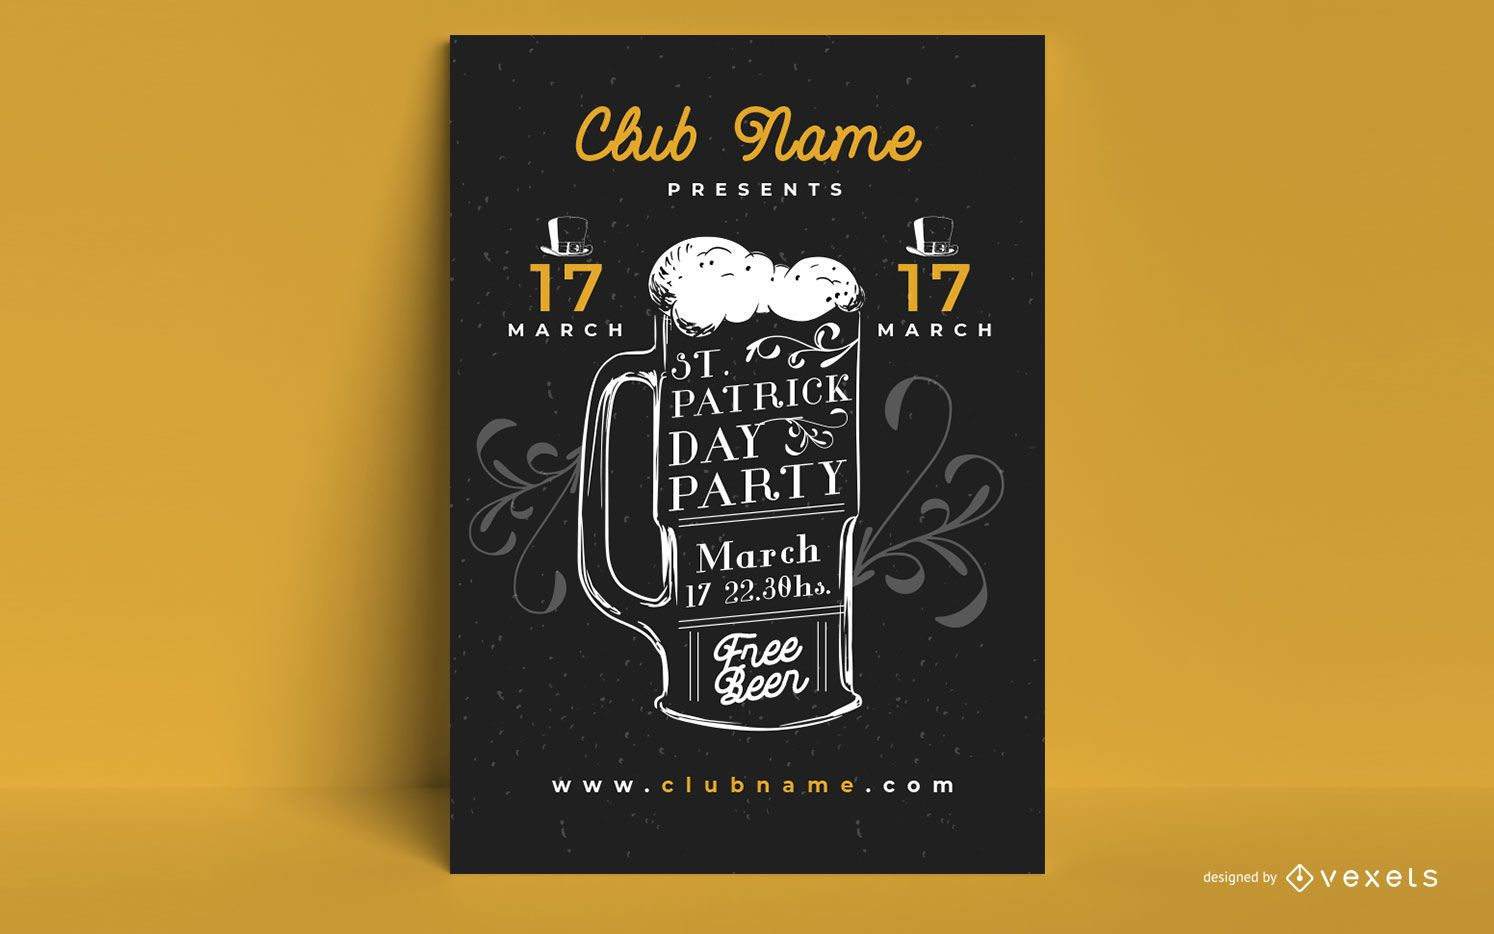 St particks beer party poster